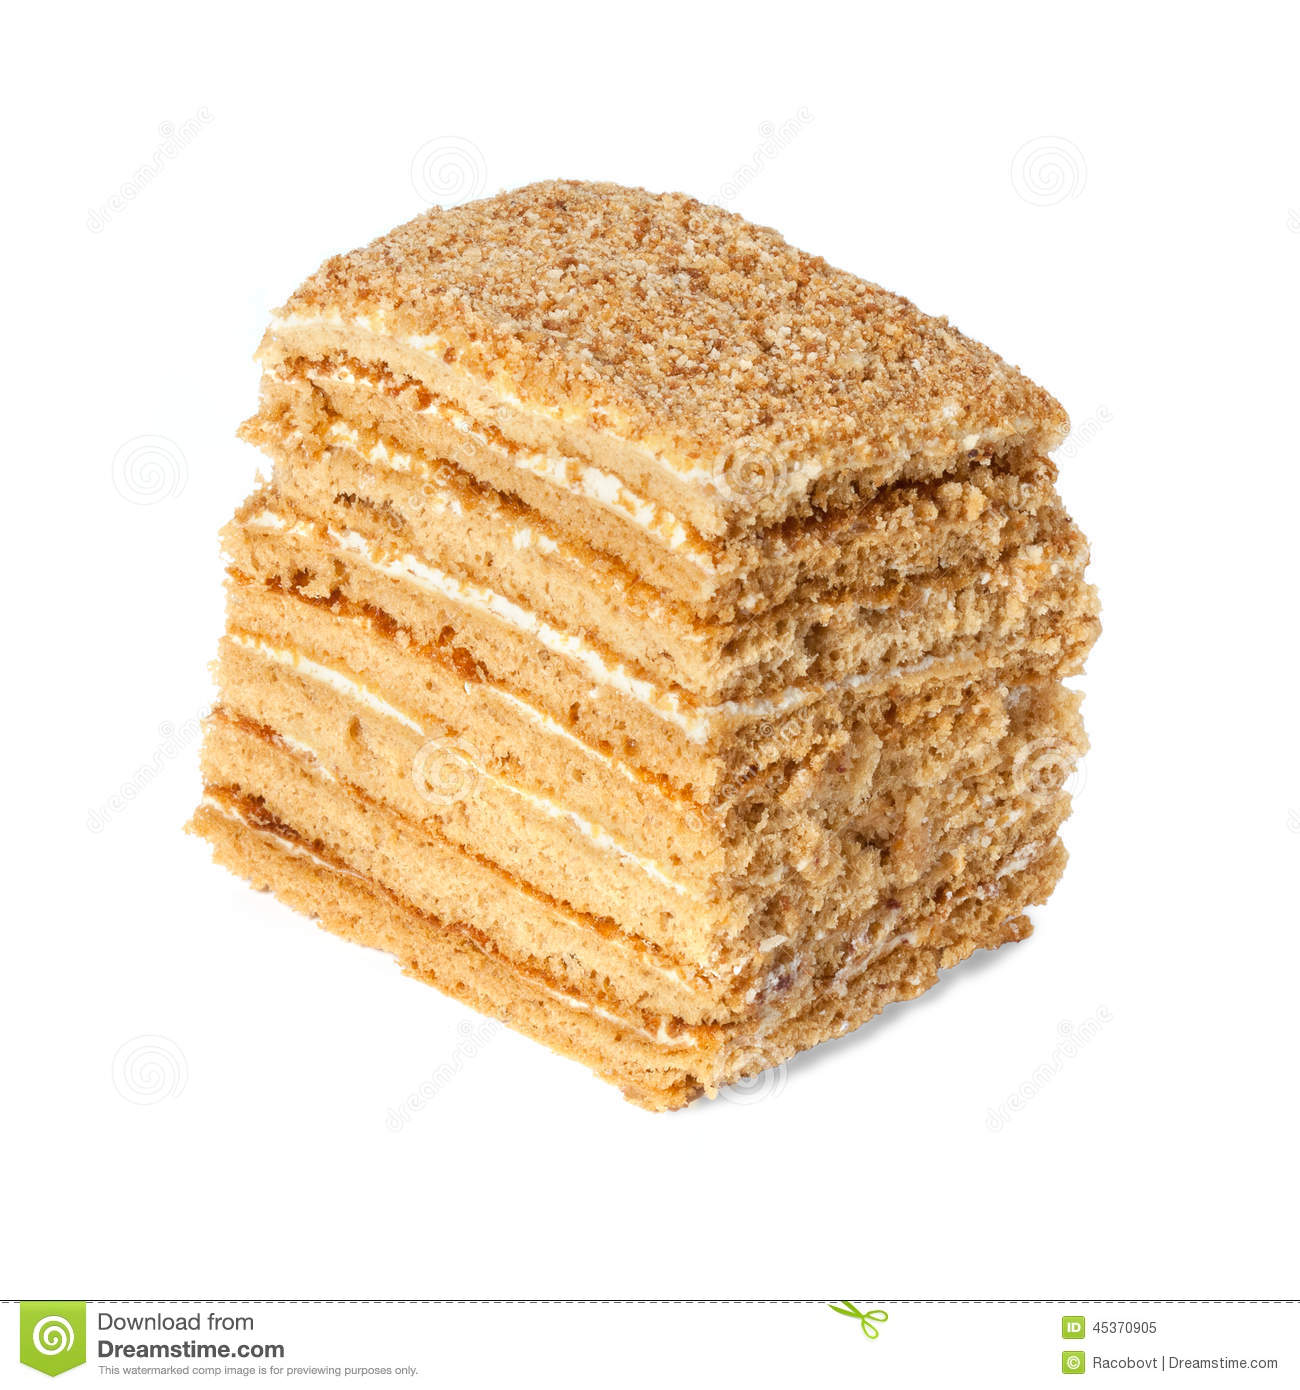 Clipart Of Honey Cake : Honey Cake Stock Photo - Image: 45370905